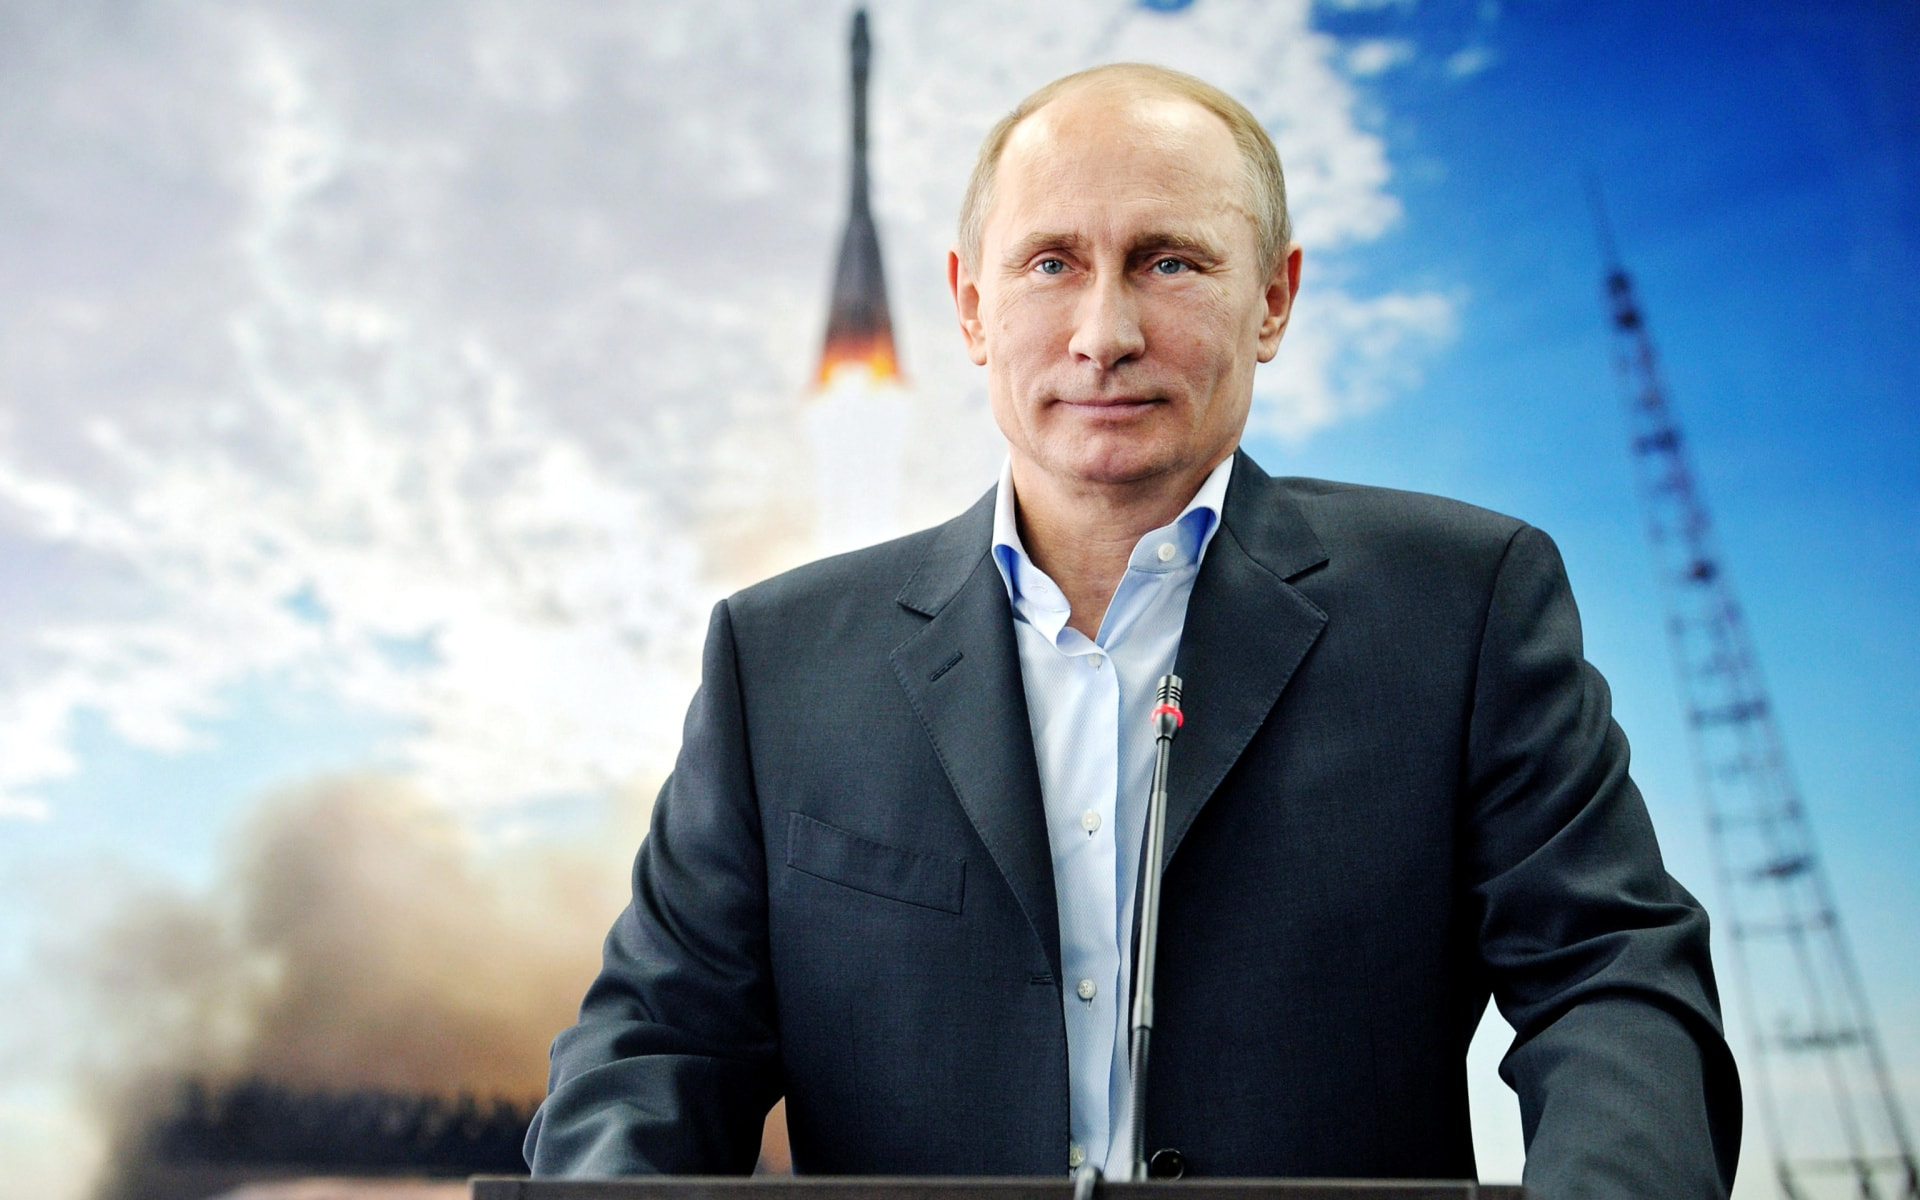 Vladimir Putin Hd Wallpapers 7wallpapers Net